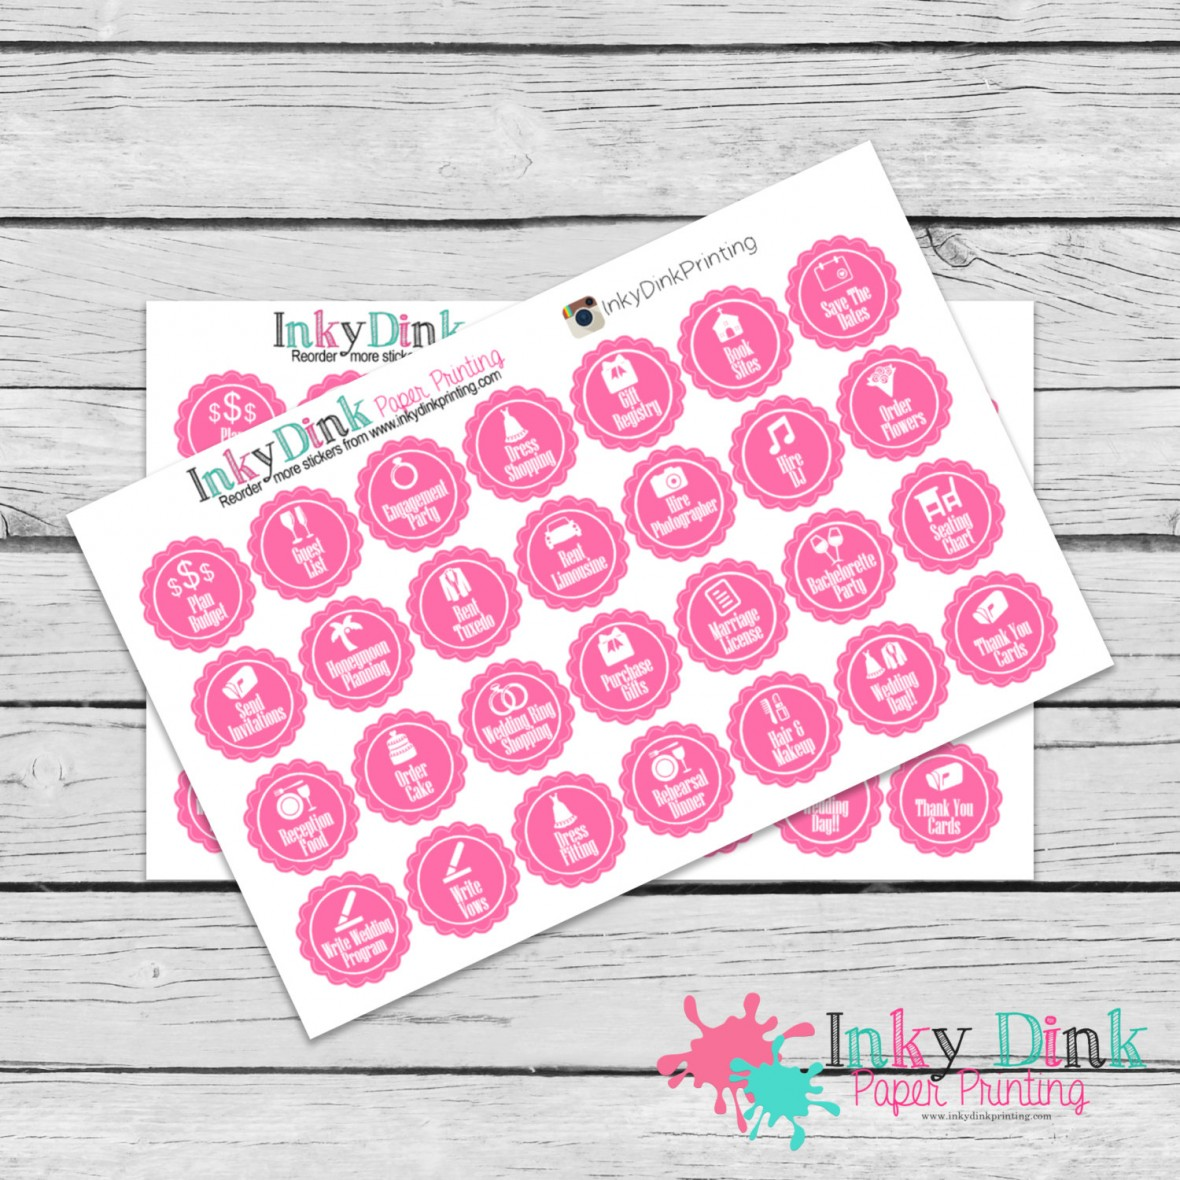 Wedding Planning Planner Stickers - Gift idea for newly engaged bride